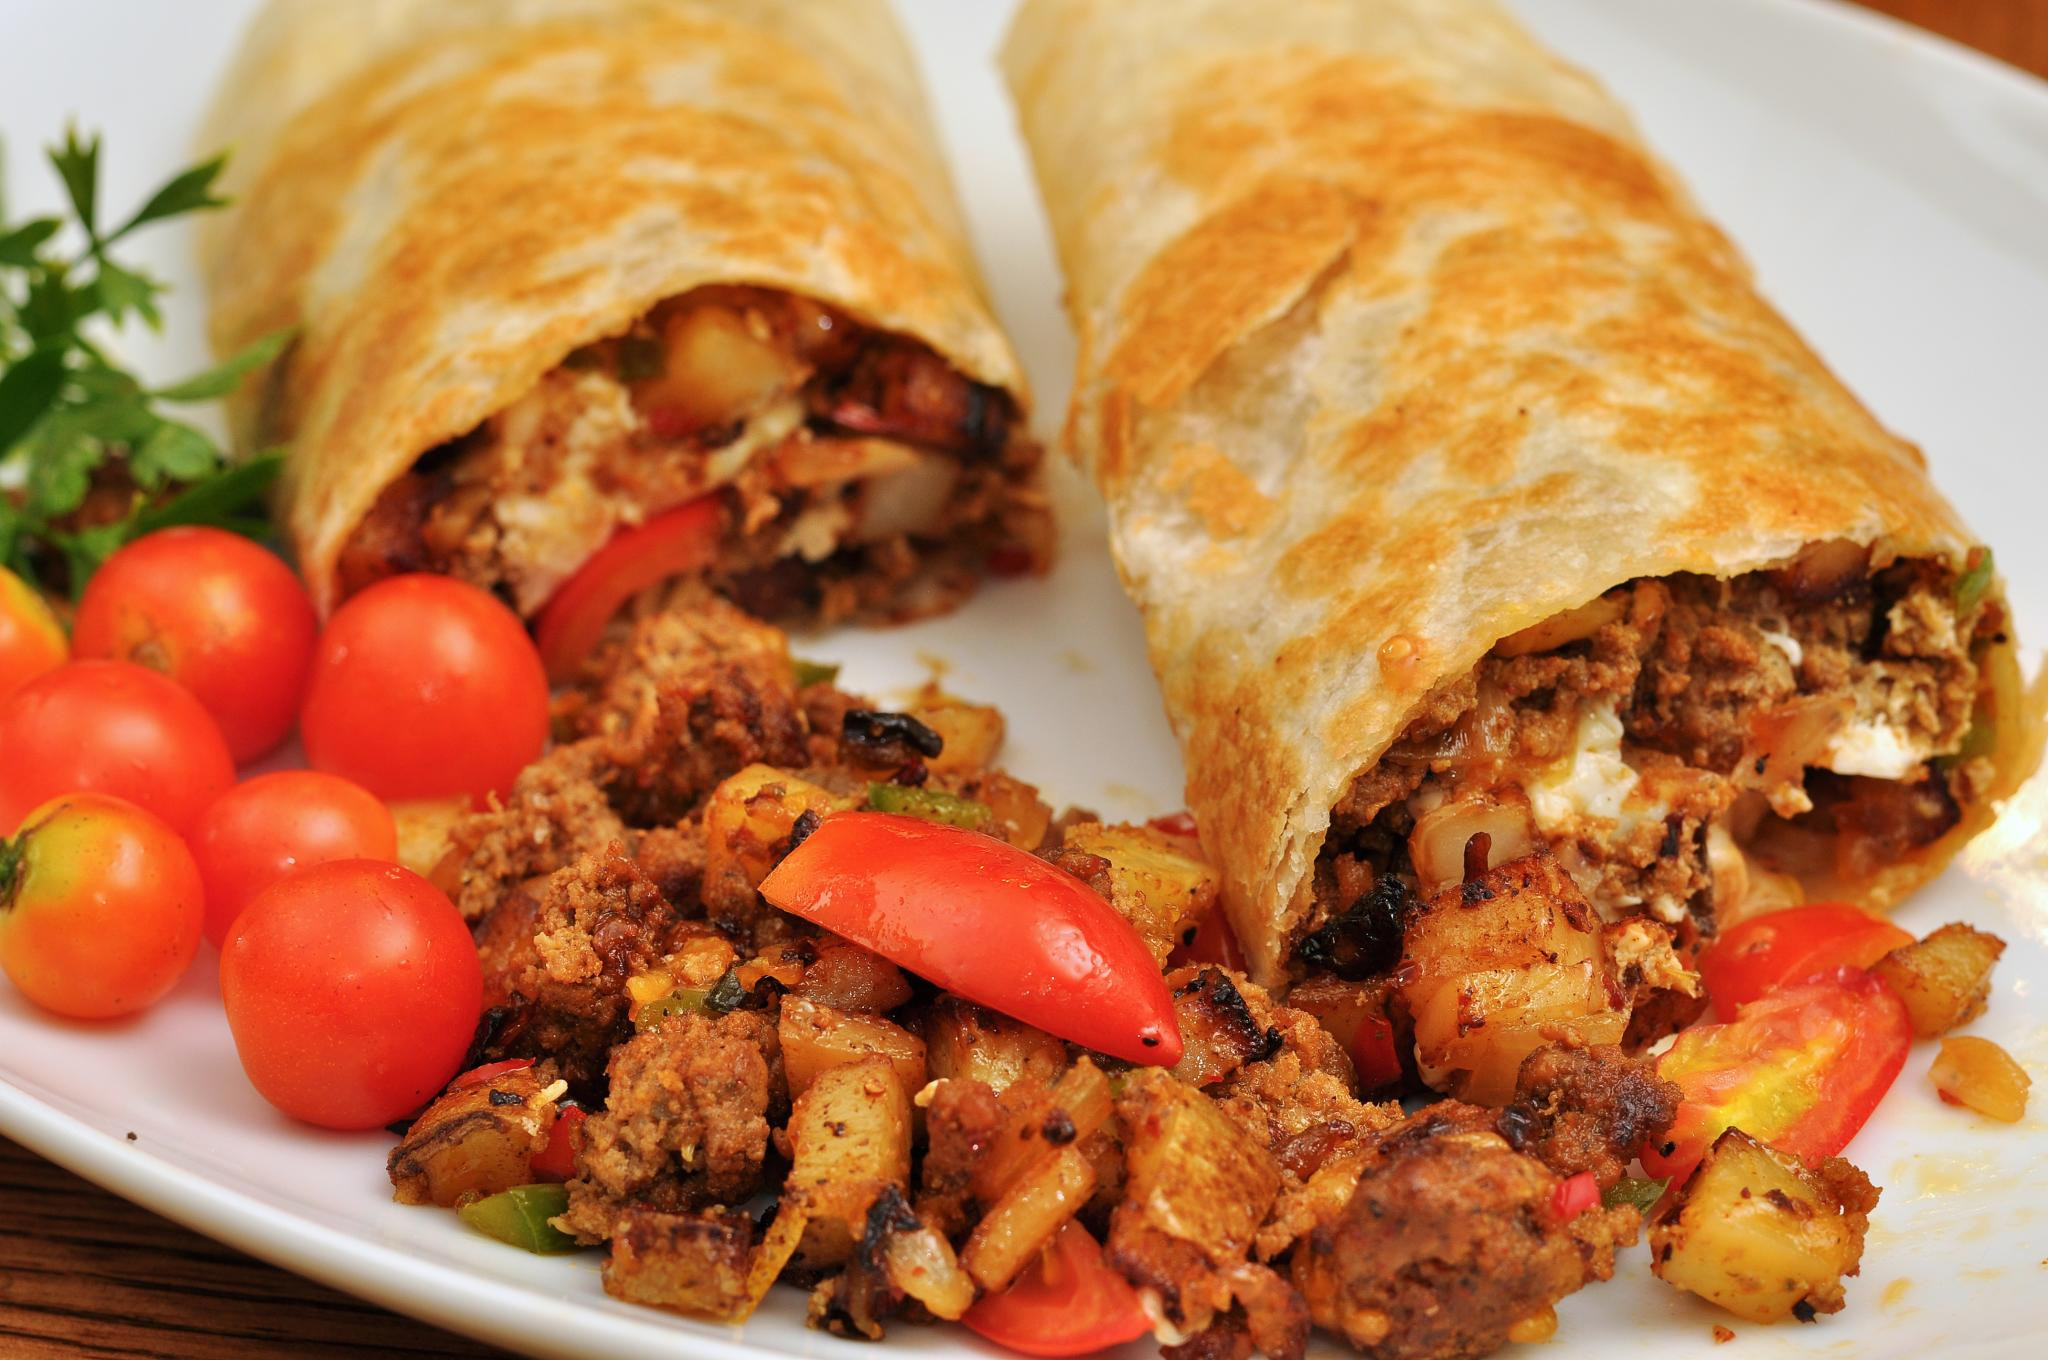 Best Breakfast Burritos  The Little Donkey Speculations on the Evolution of